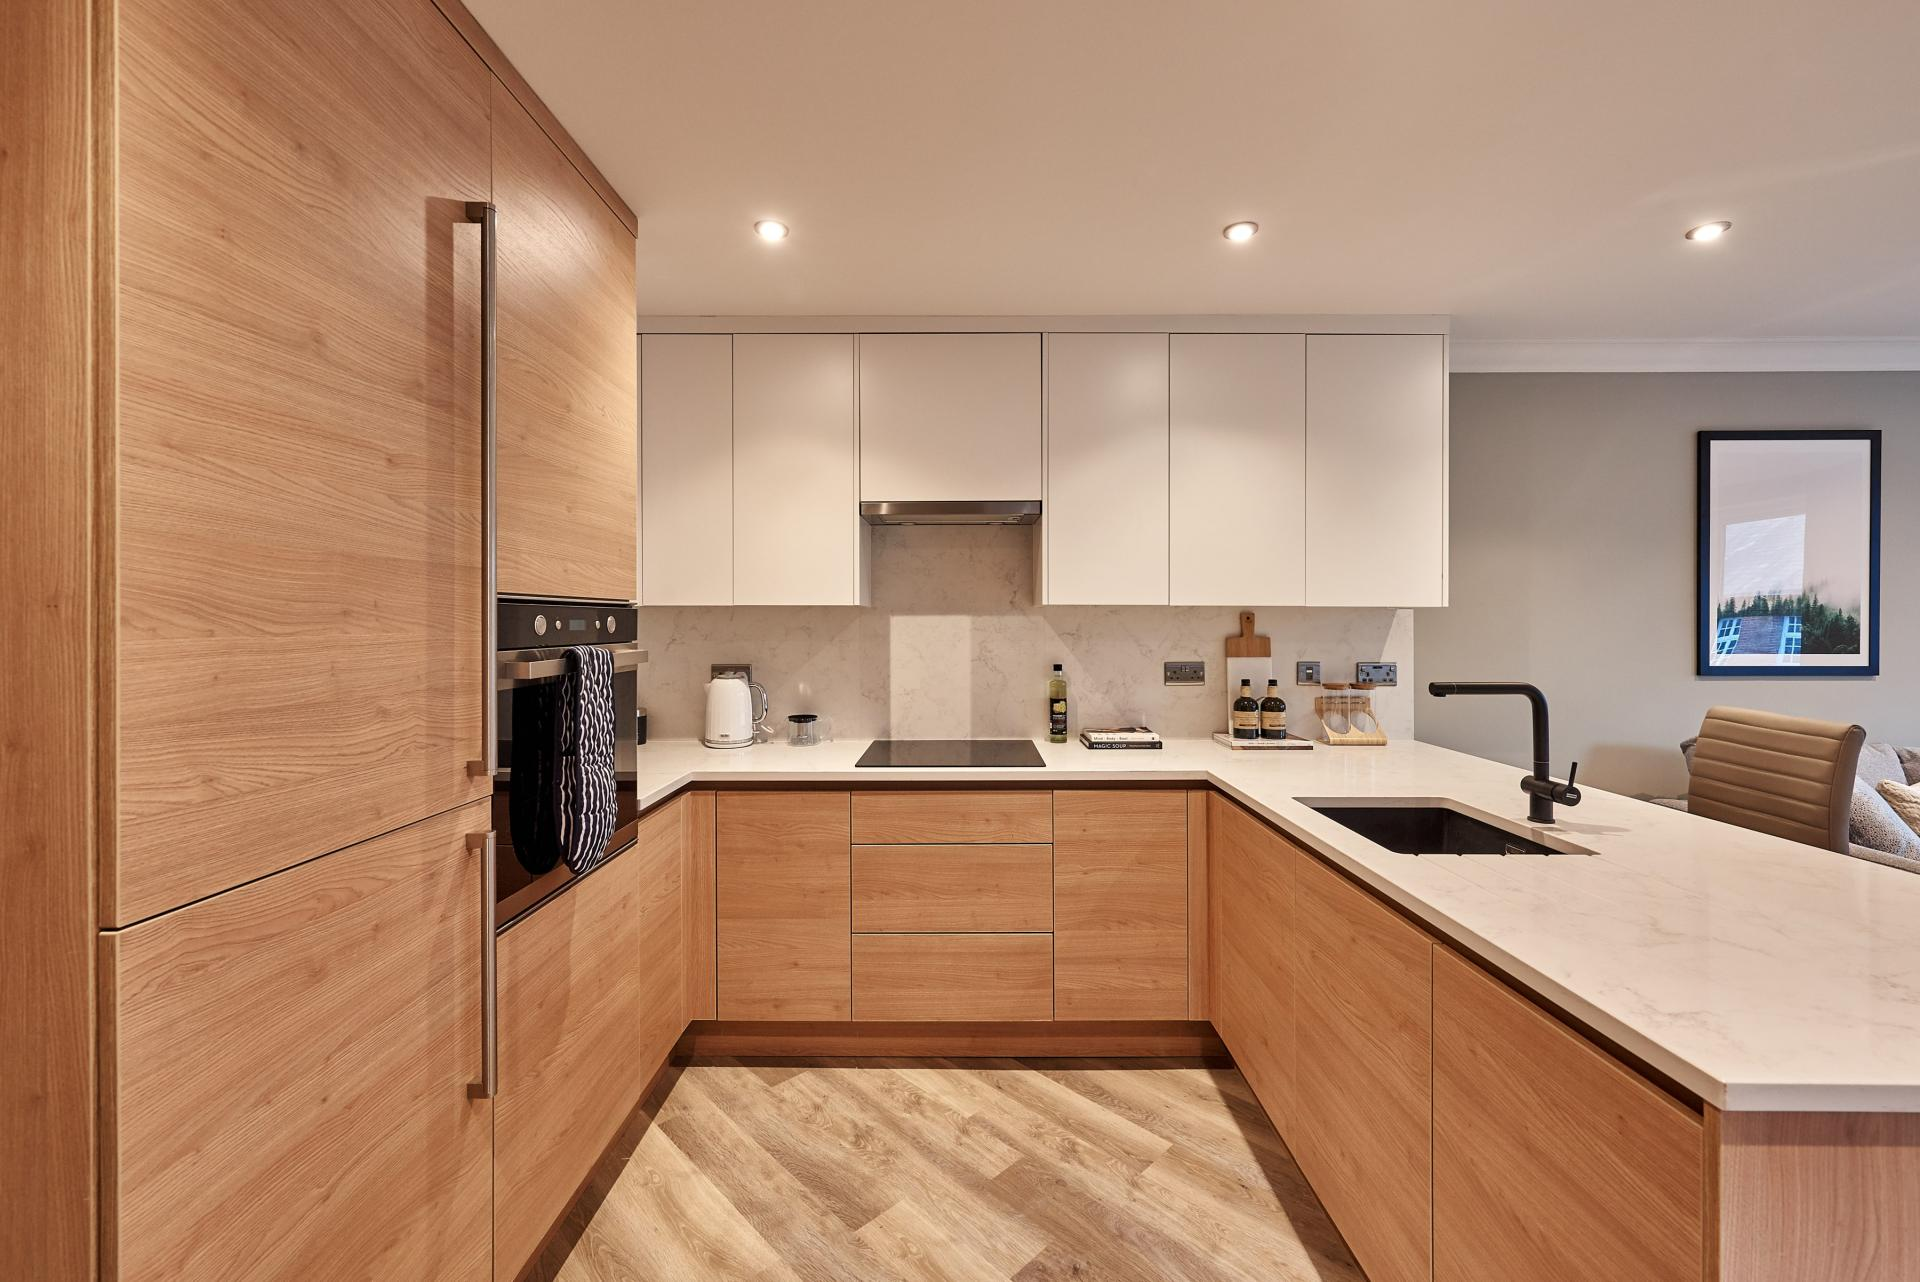 Kitchen at The St Paul's Residence, Jewellery Quarter, Birmingham - Citybase Apartments